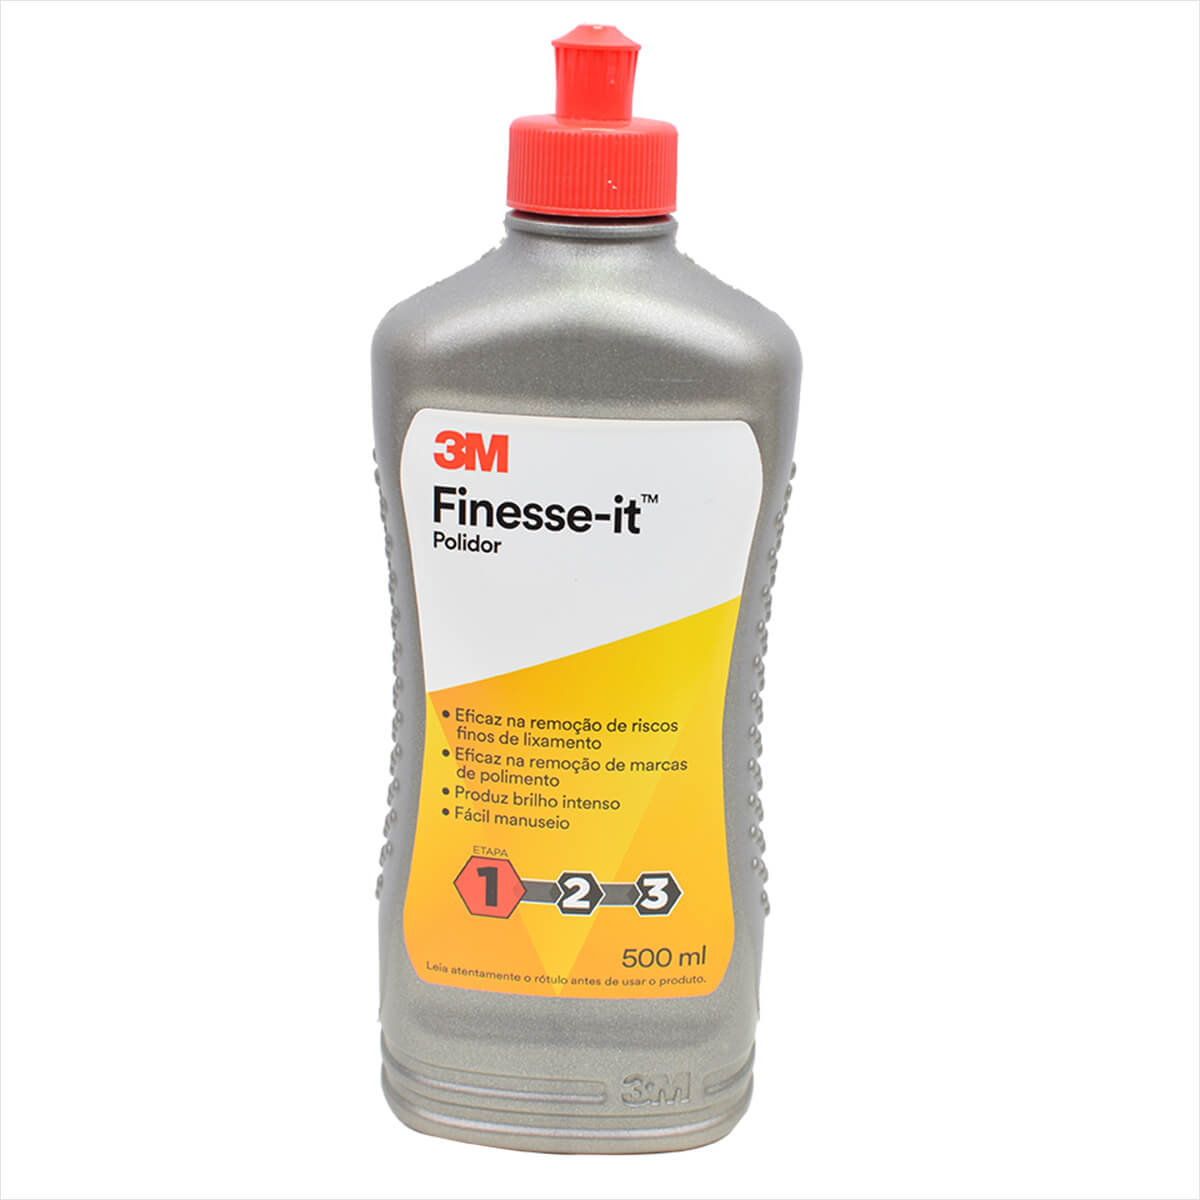 3M Polidor Finesse it Linha Gold 500ml